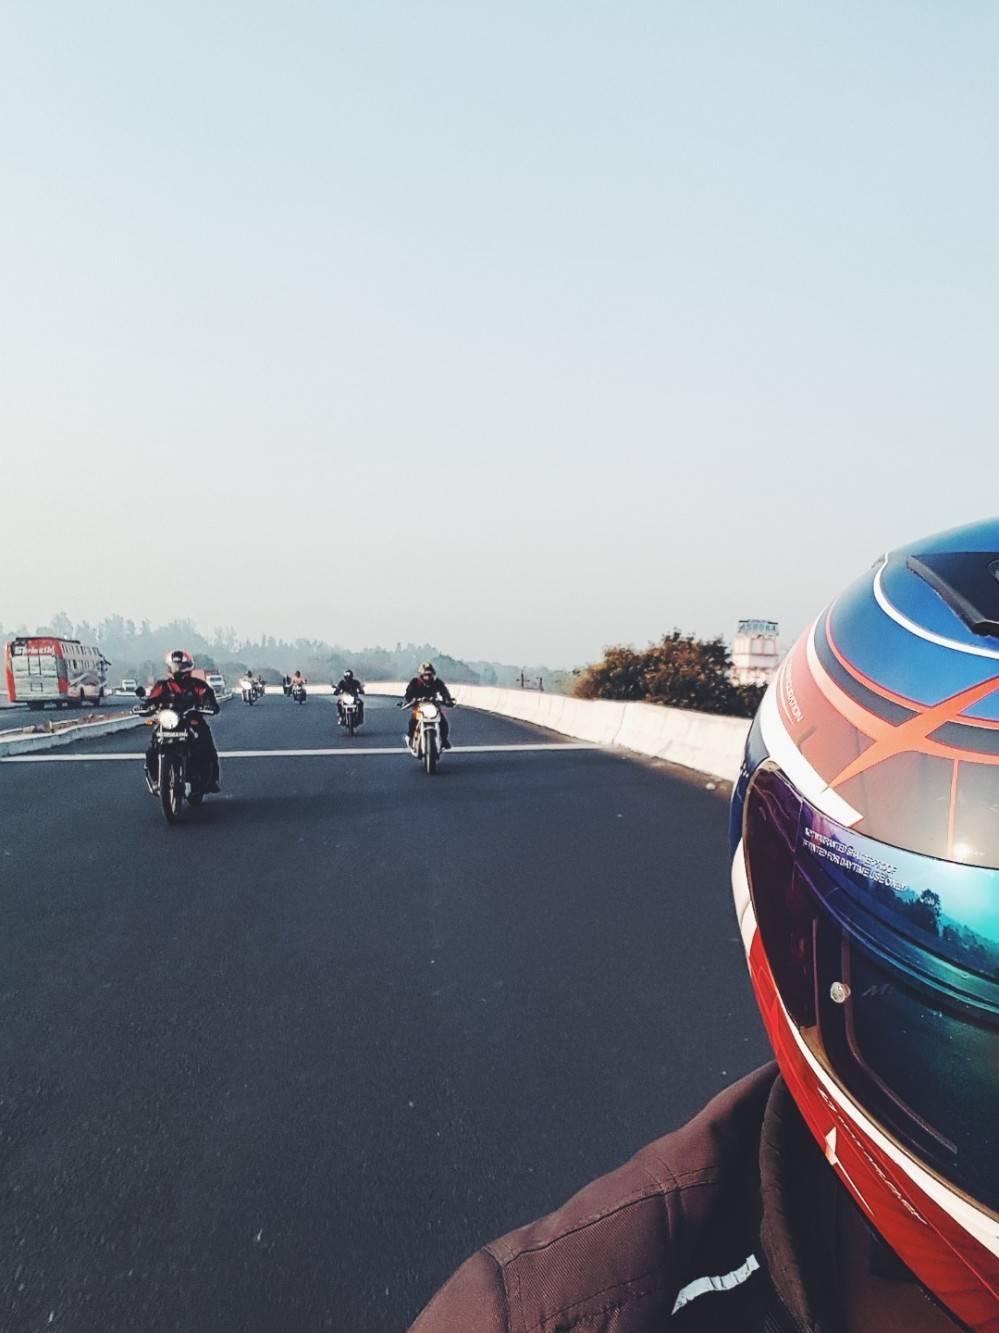 Partial helmet view selfie showing Royal Enfield motorcyclists on the highway